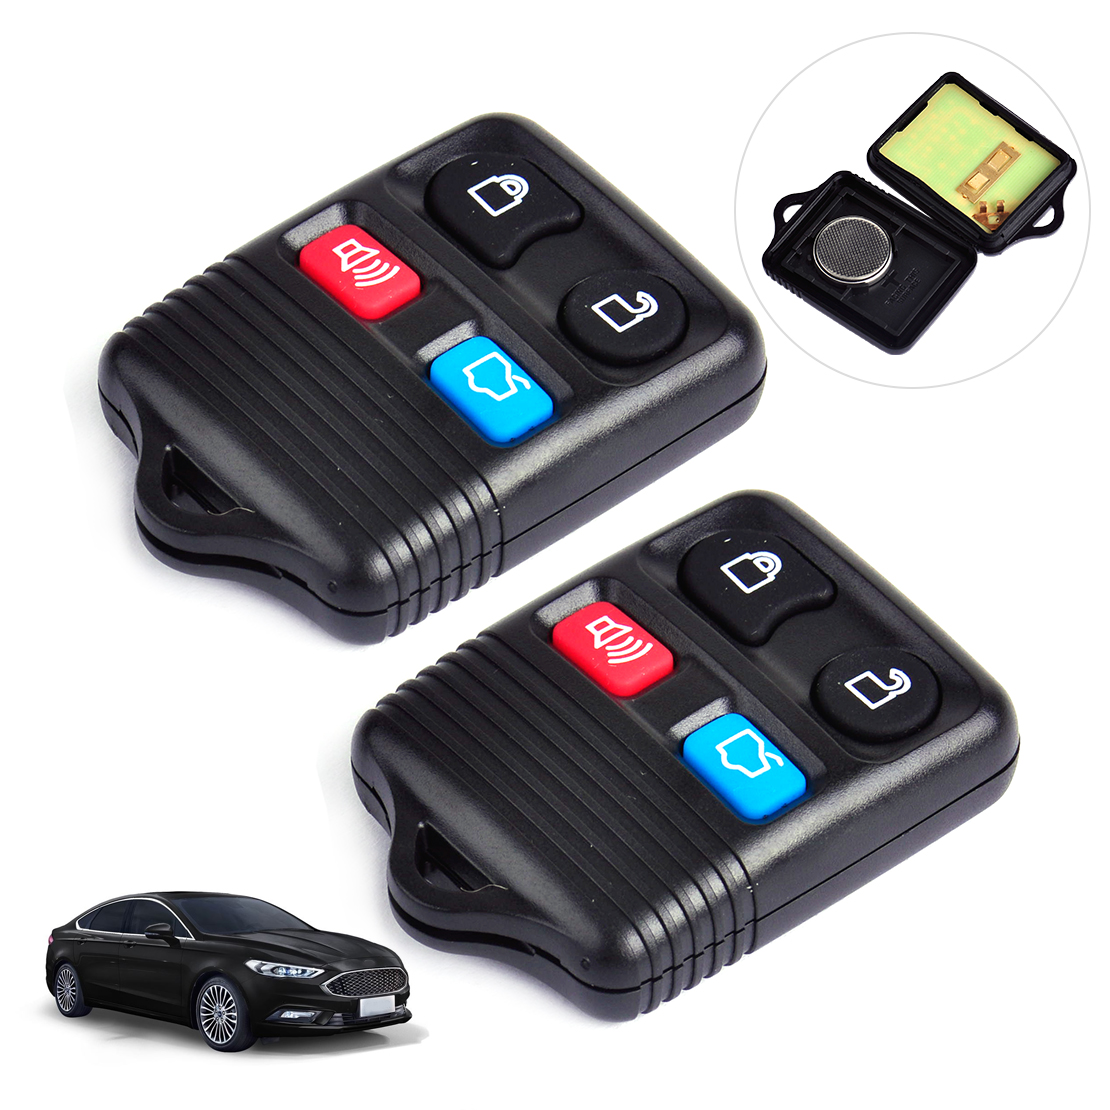 4 Buttons Remote Case Shell FOB for Ford Taurus 2002 2003 2004 2005 2006 2007